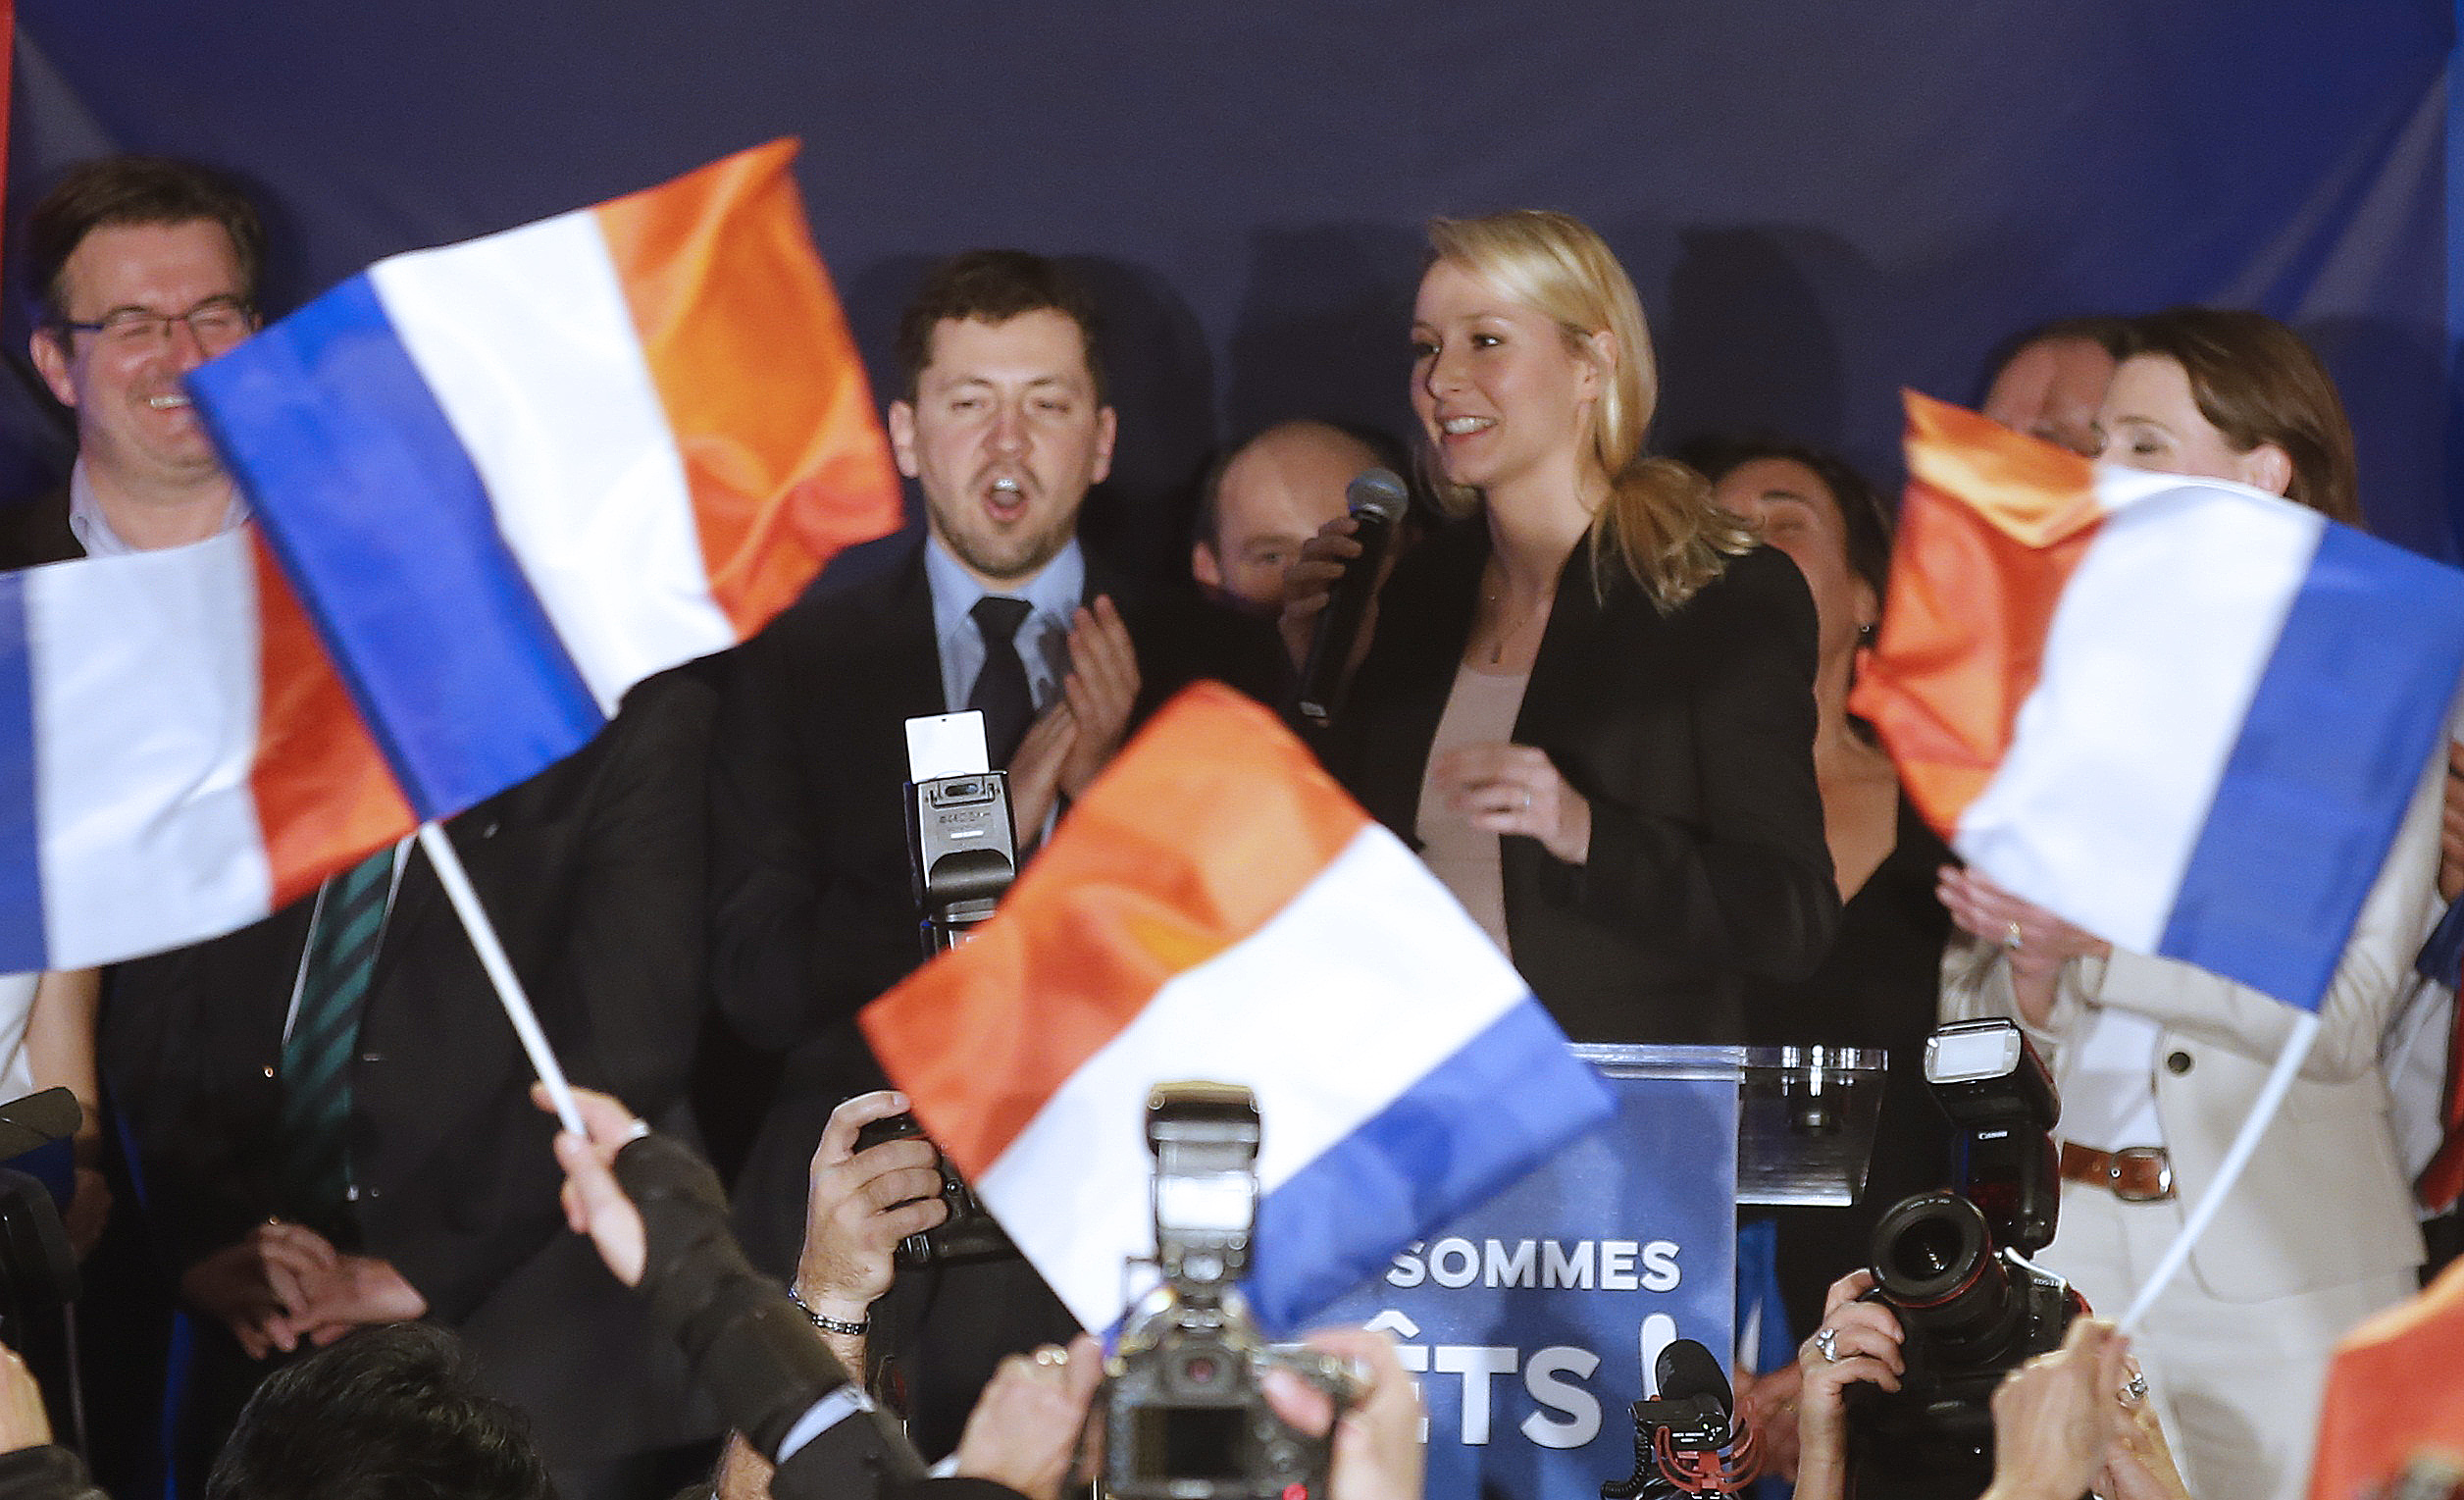 Marion Marechal-Le Pen, French National Front political party member and candidate for National Front in the PACA region arrives to deliver her speech in Le Pontet